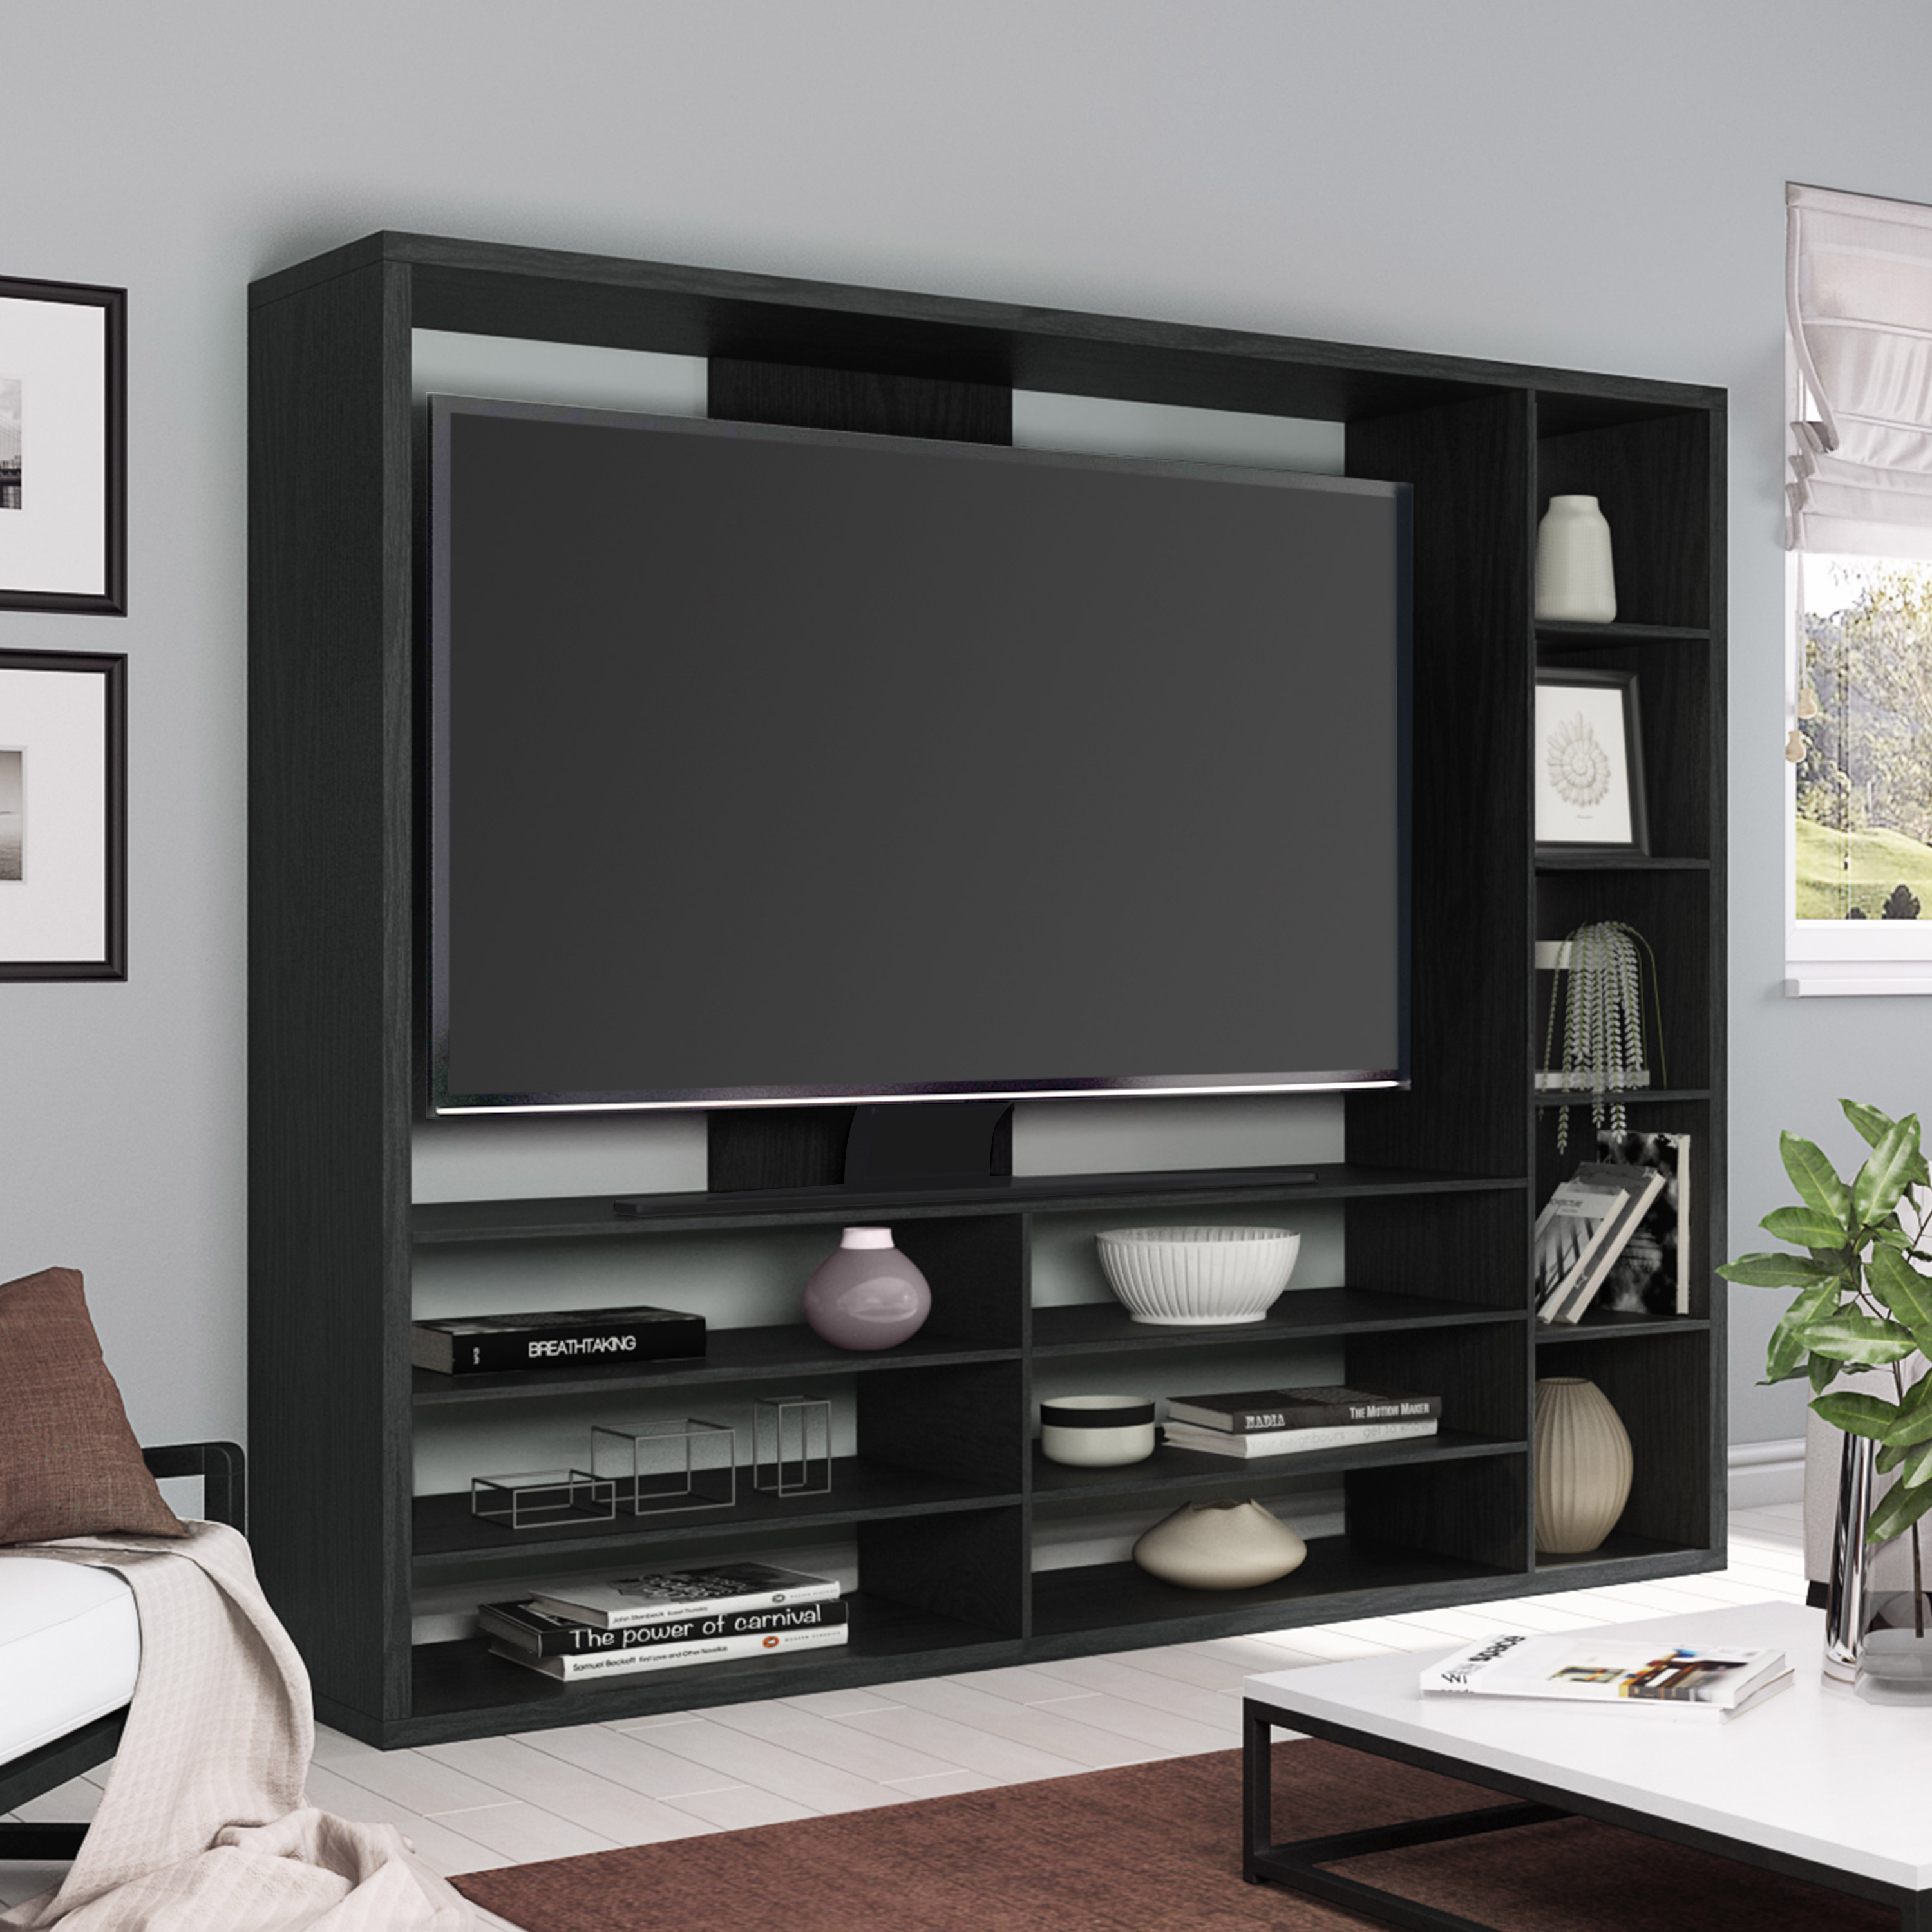 Tvs Up To 55 Ideal Tv Stand, Living Room Entertainment Center